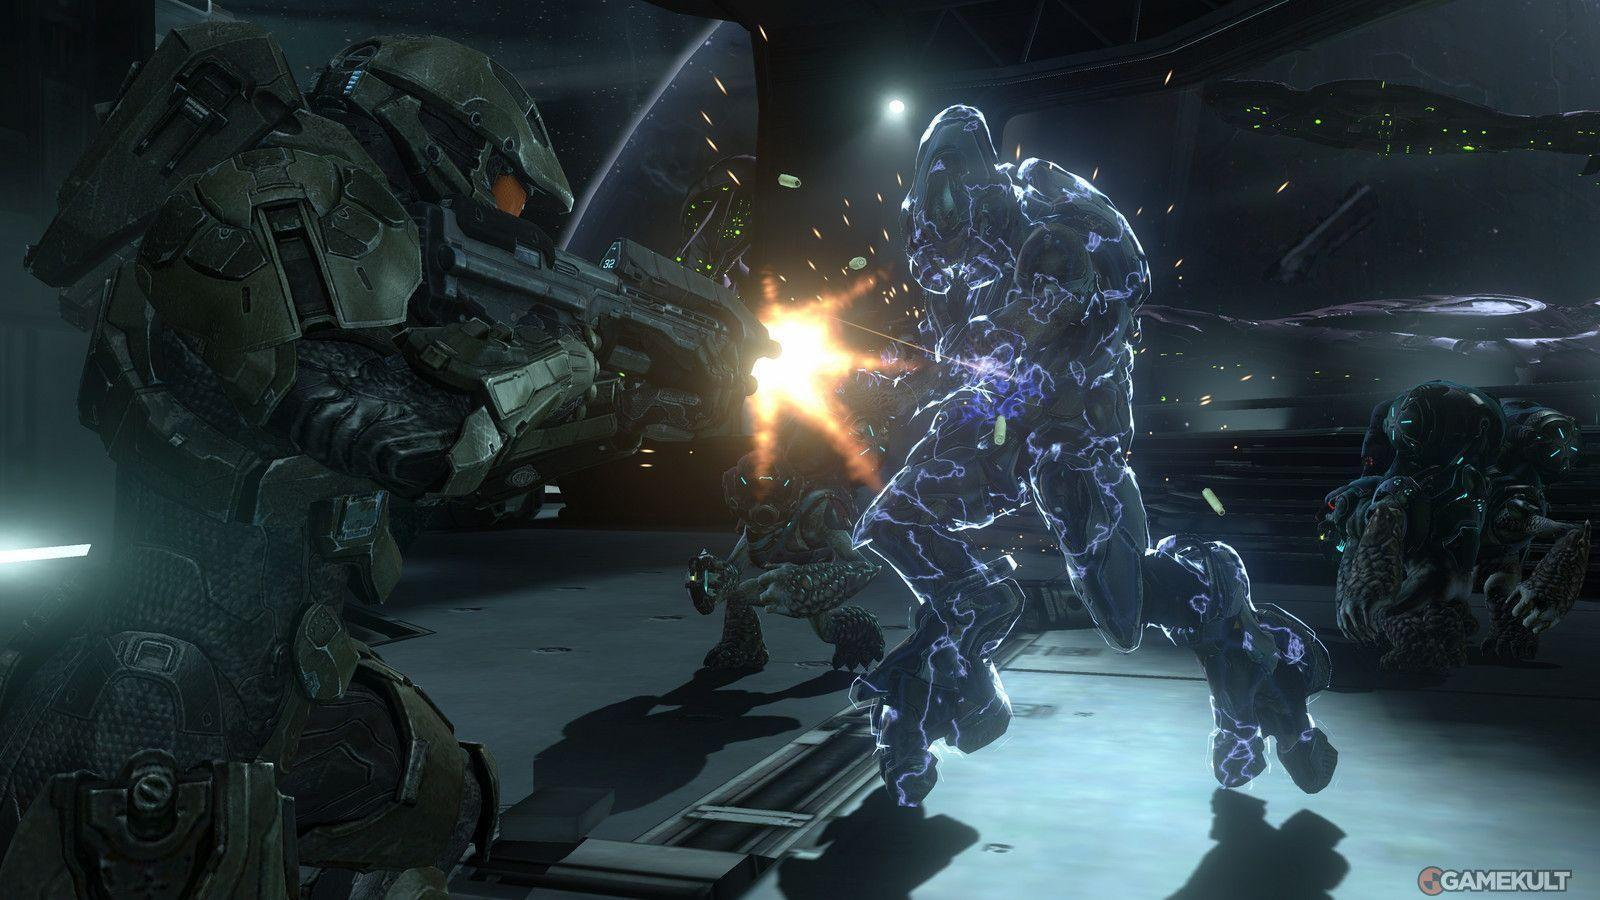 Halo 2 (Video Game 2004) - Connections - IMDb